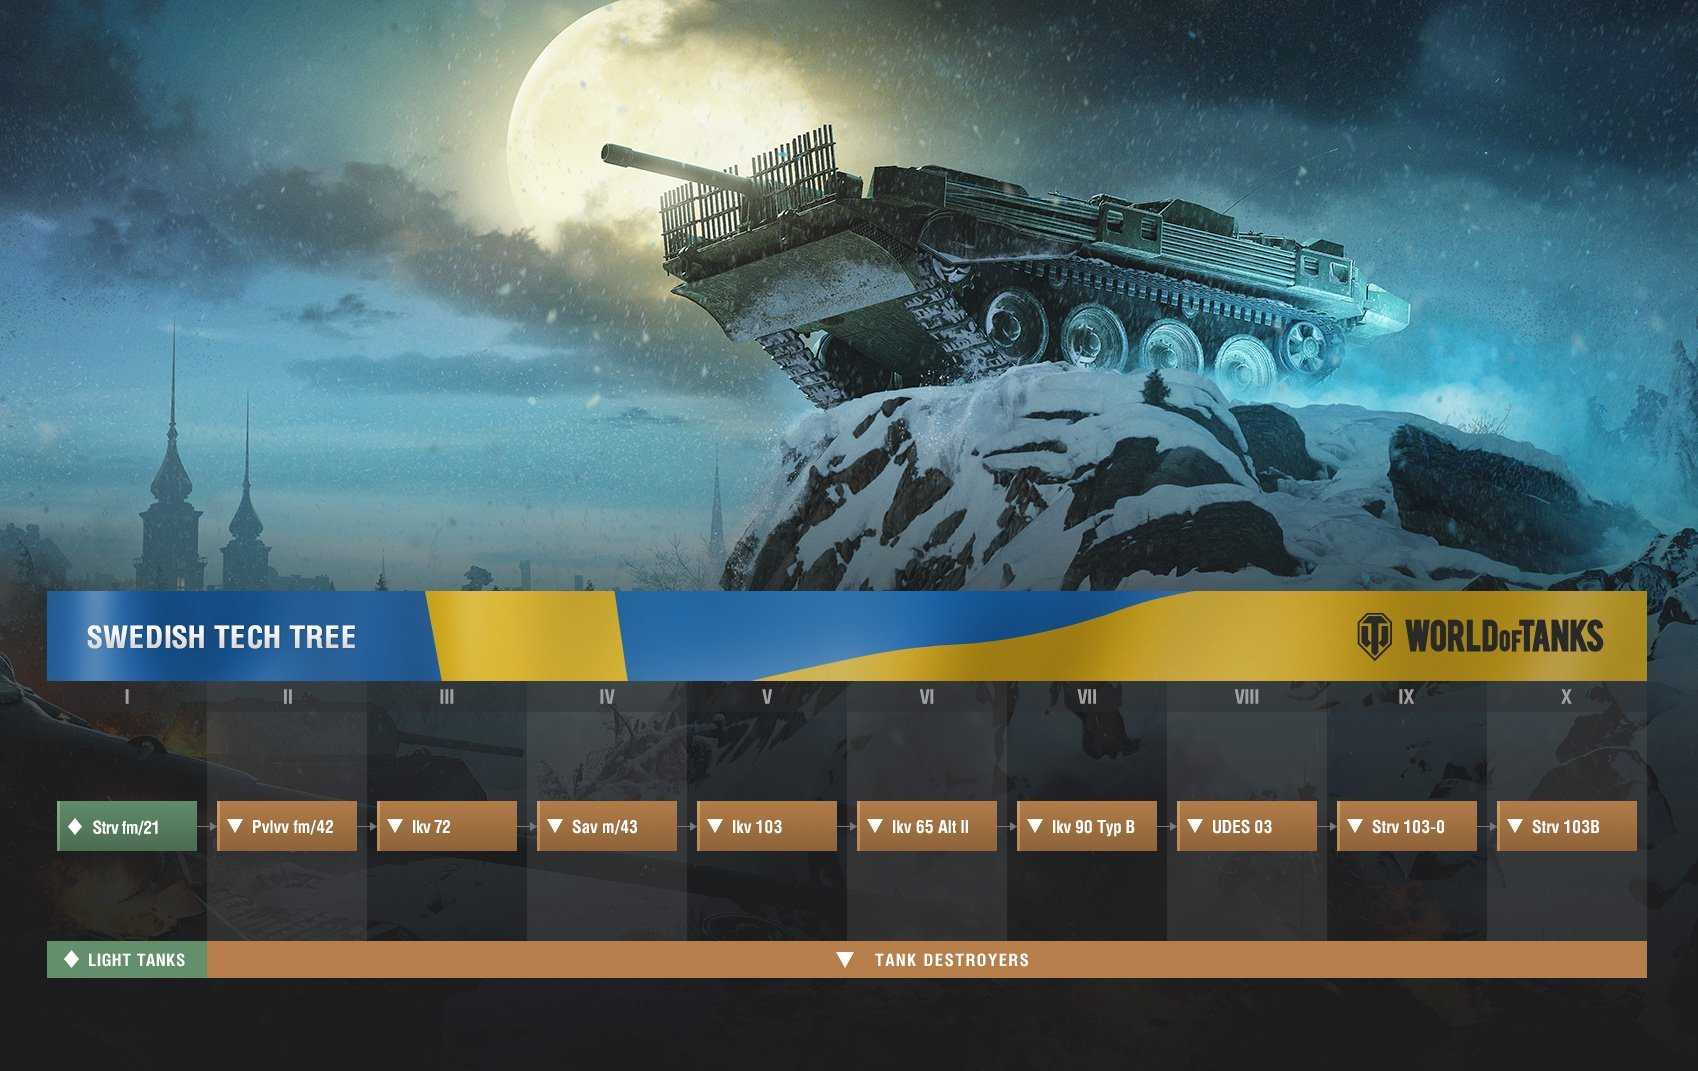 The second Swedish tank line is, bar the Tier 1, purely Tank Destroyers.